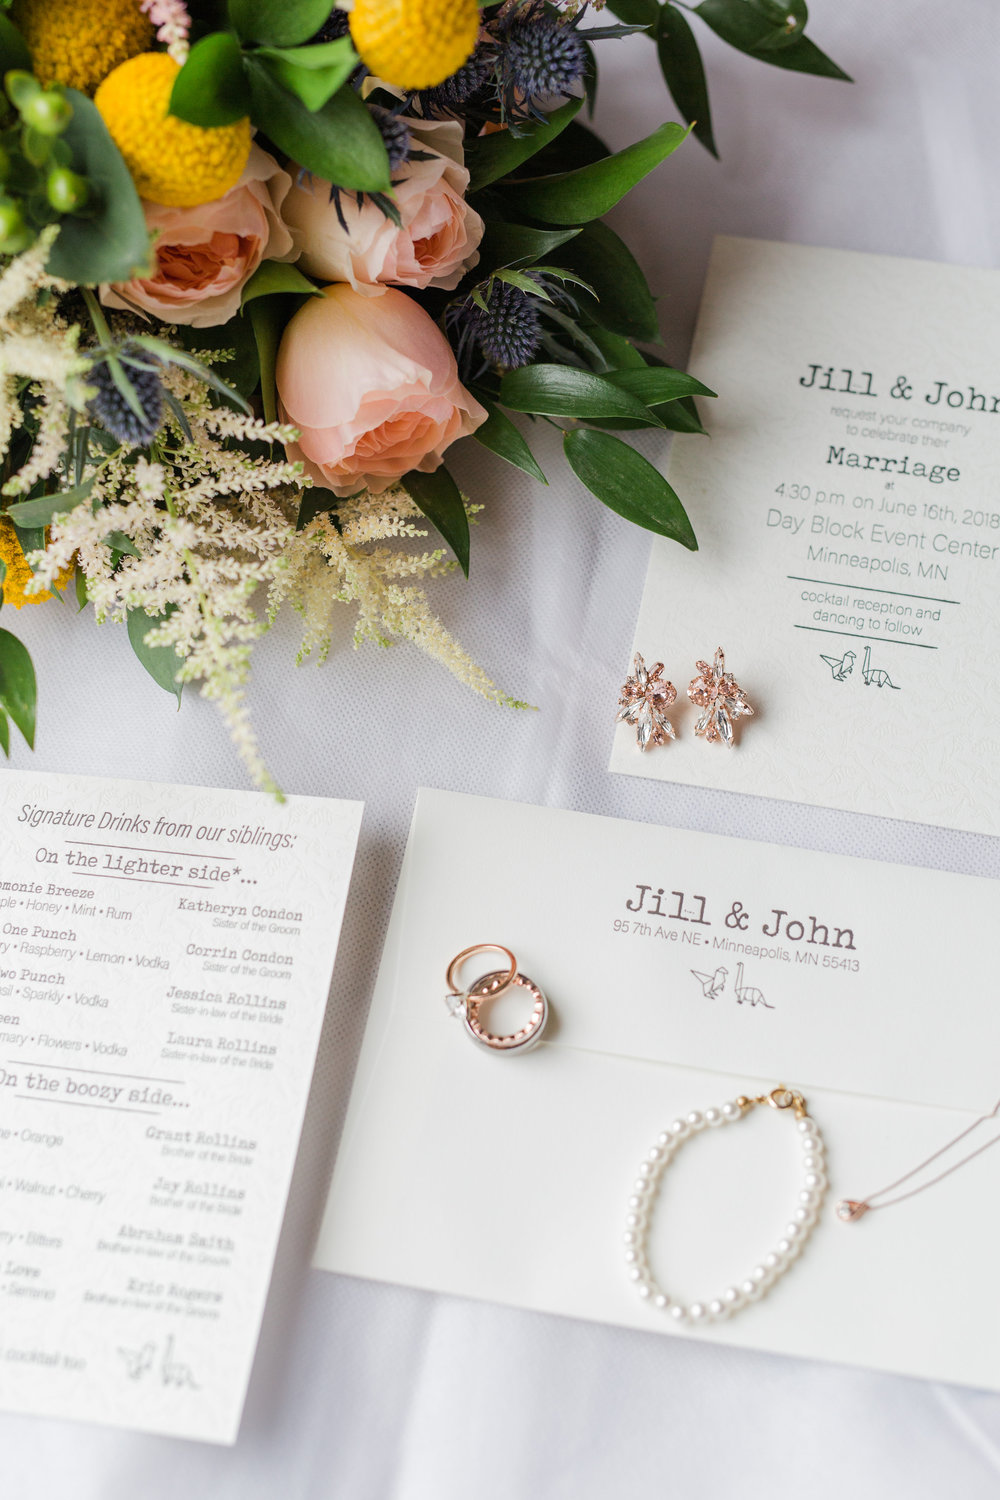 Jill + John :: Kristen Dyer :: Sixpence Events details photo | paper crane dinosaurs, letter press, rose gold, white astilbe and italian ruscus with blue thistle